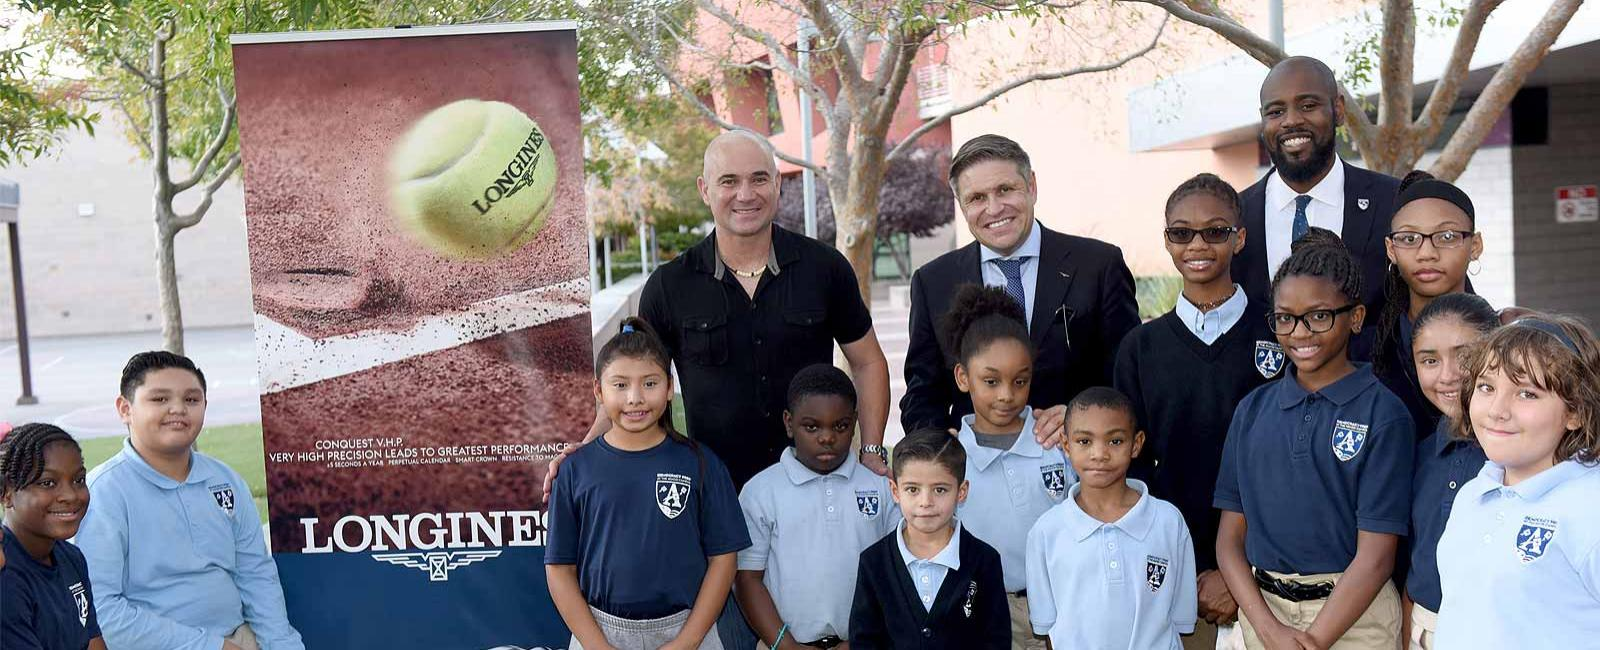 the Agassi Campus school; Las Vegas; André Agassi; 10-year partnership